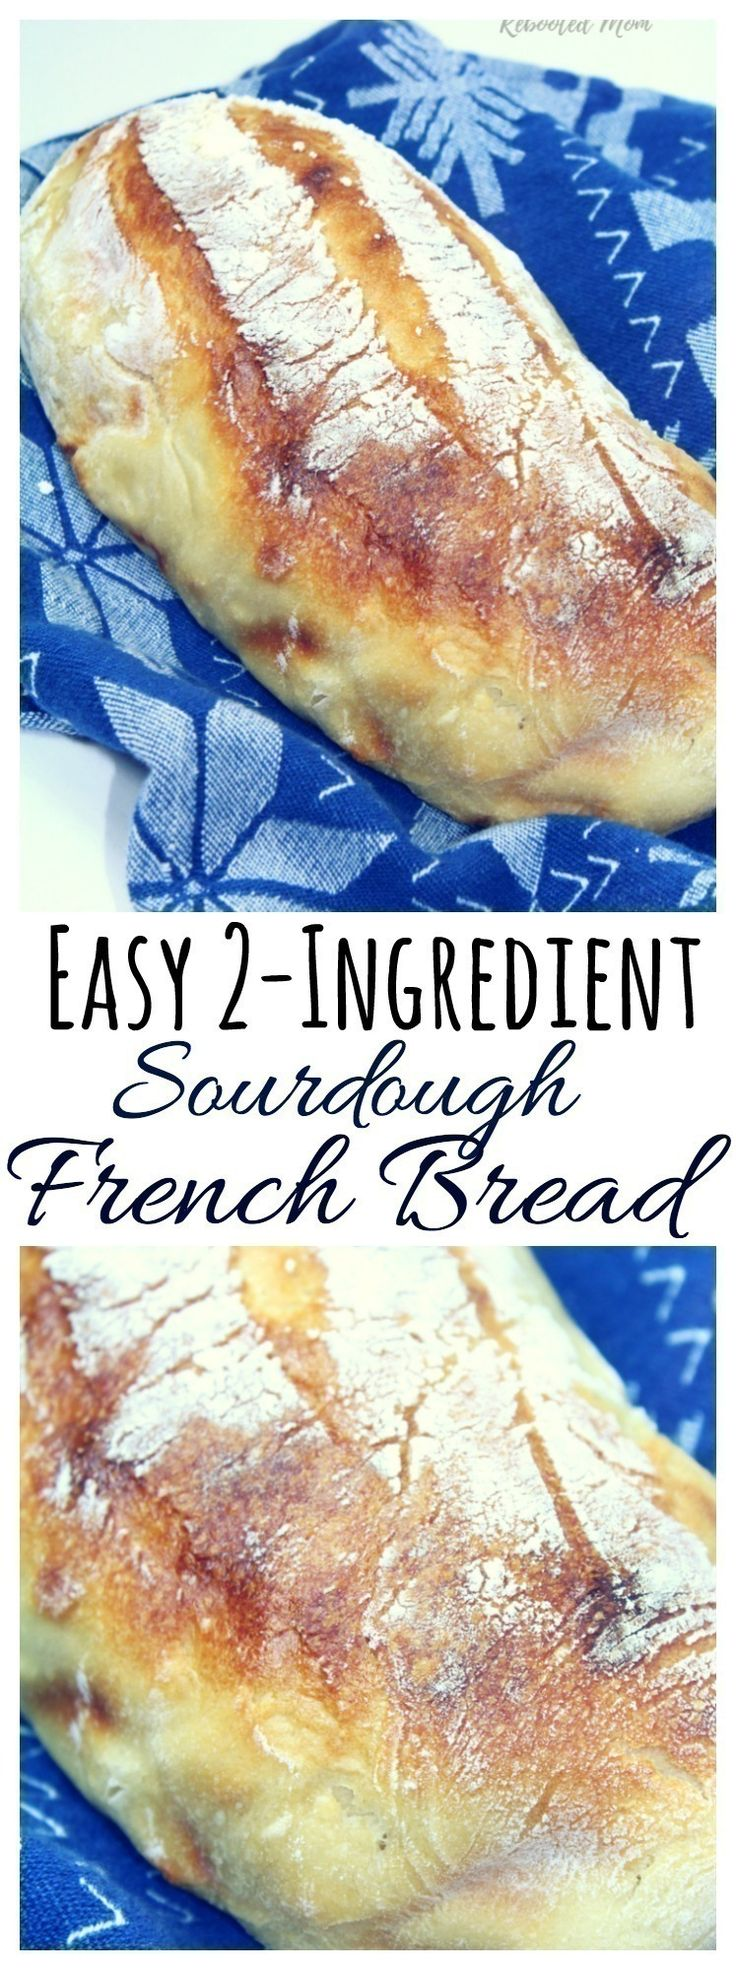 A beautiful loaf of gluten-free sourdough french bread ...